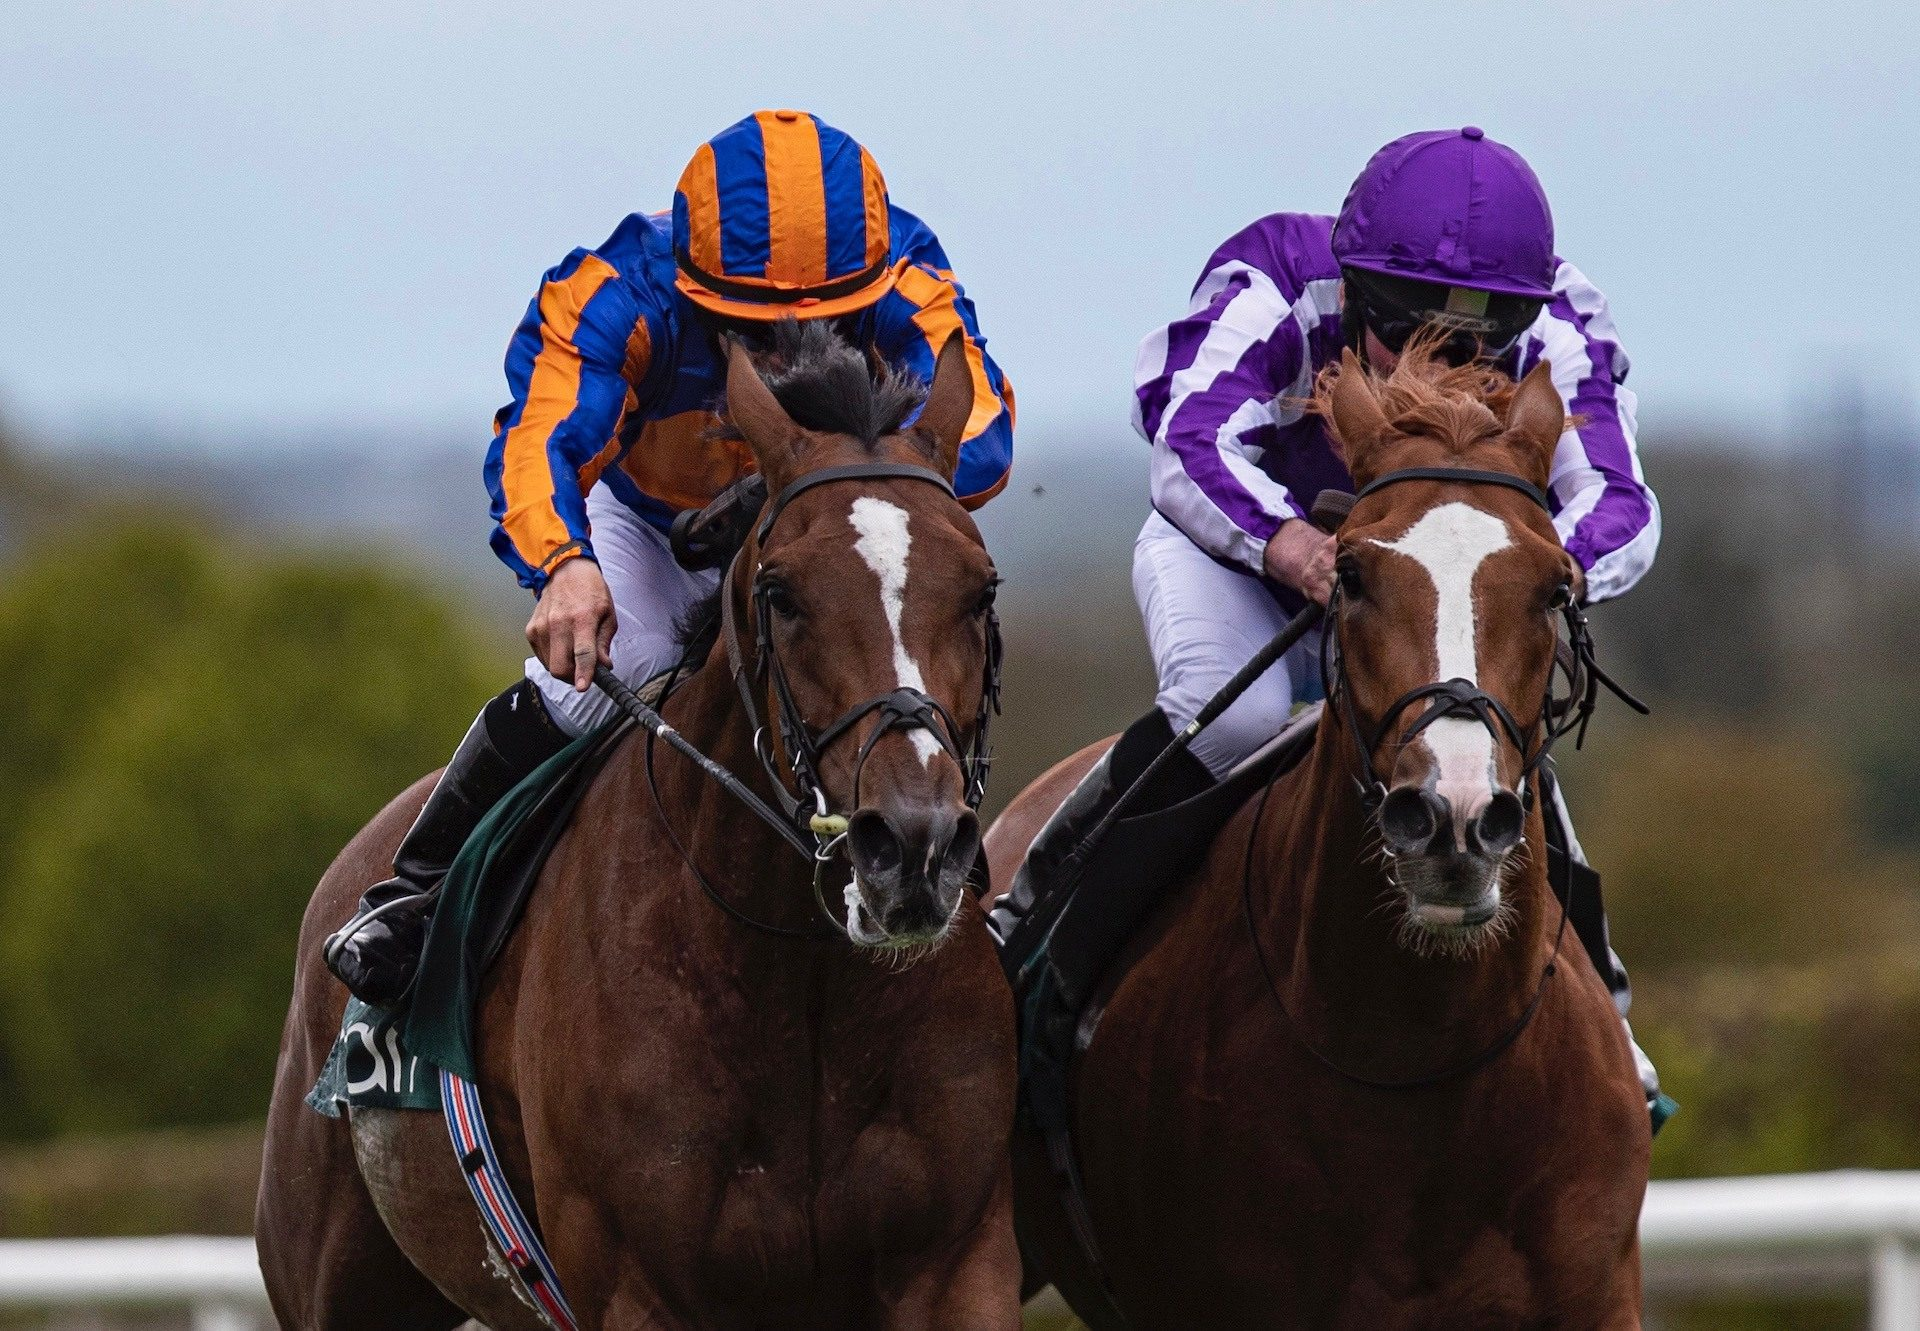 Sir Lucan (Camelot) Wins The Listed Yeats Stakes At Navan